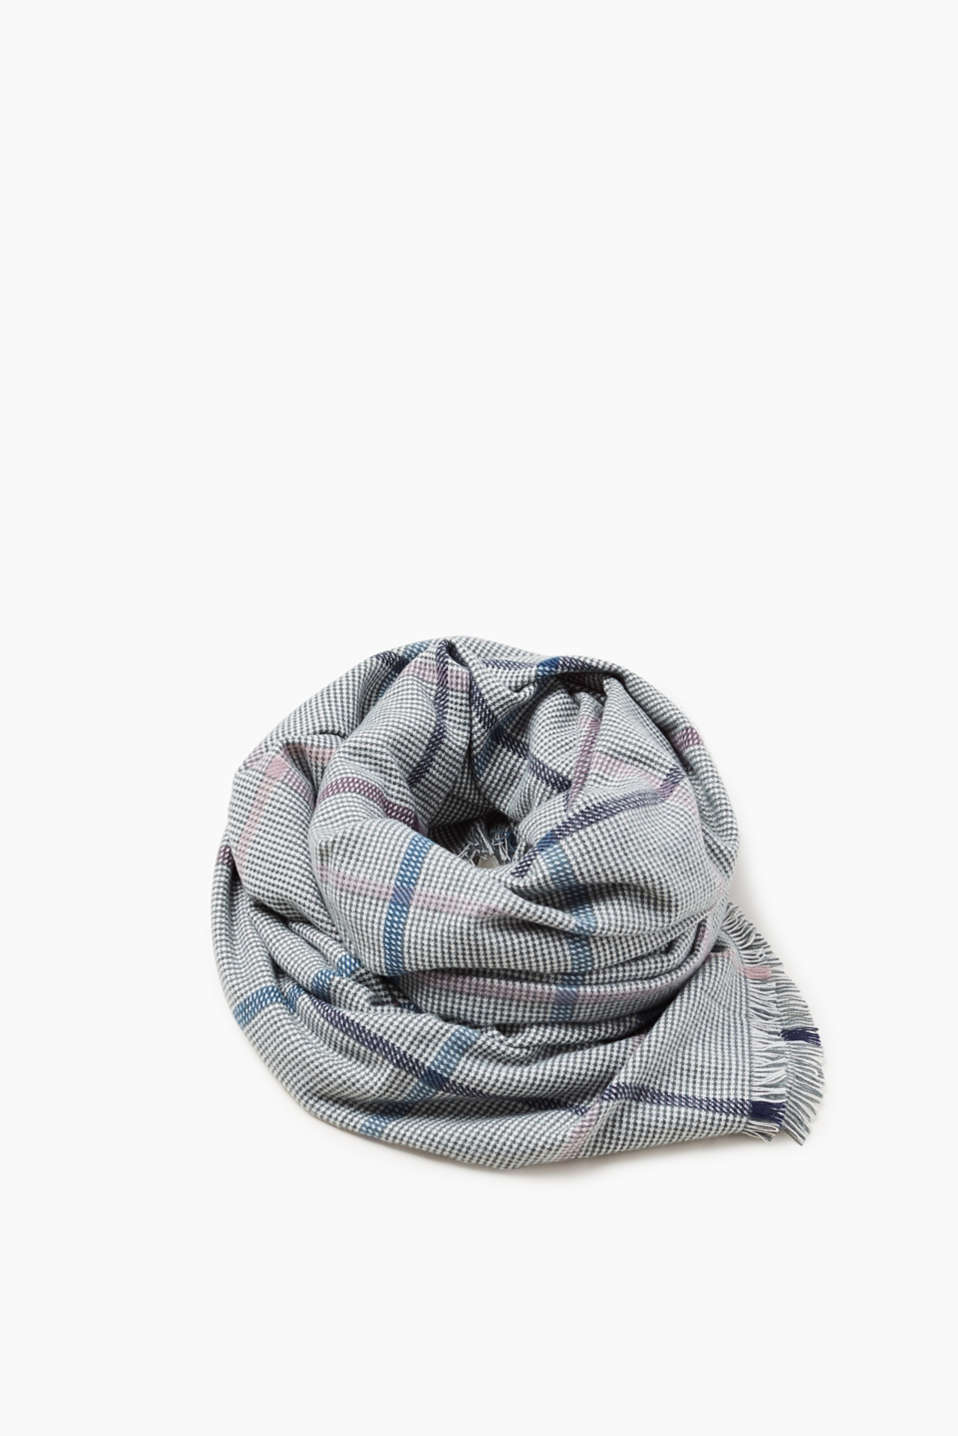 Esprit - Oversized scarf with a check pattern